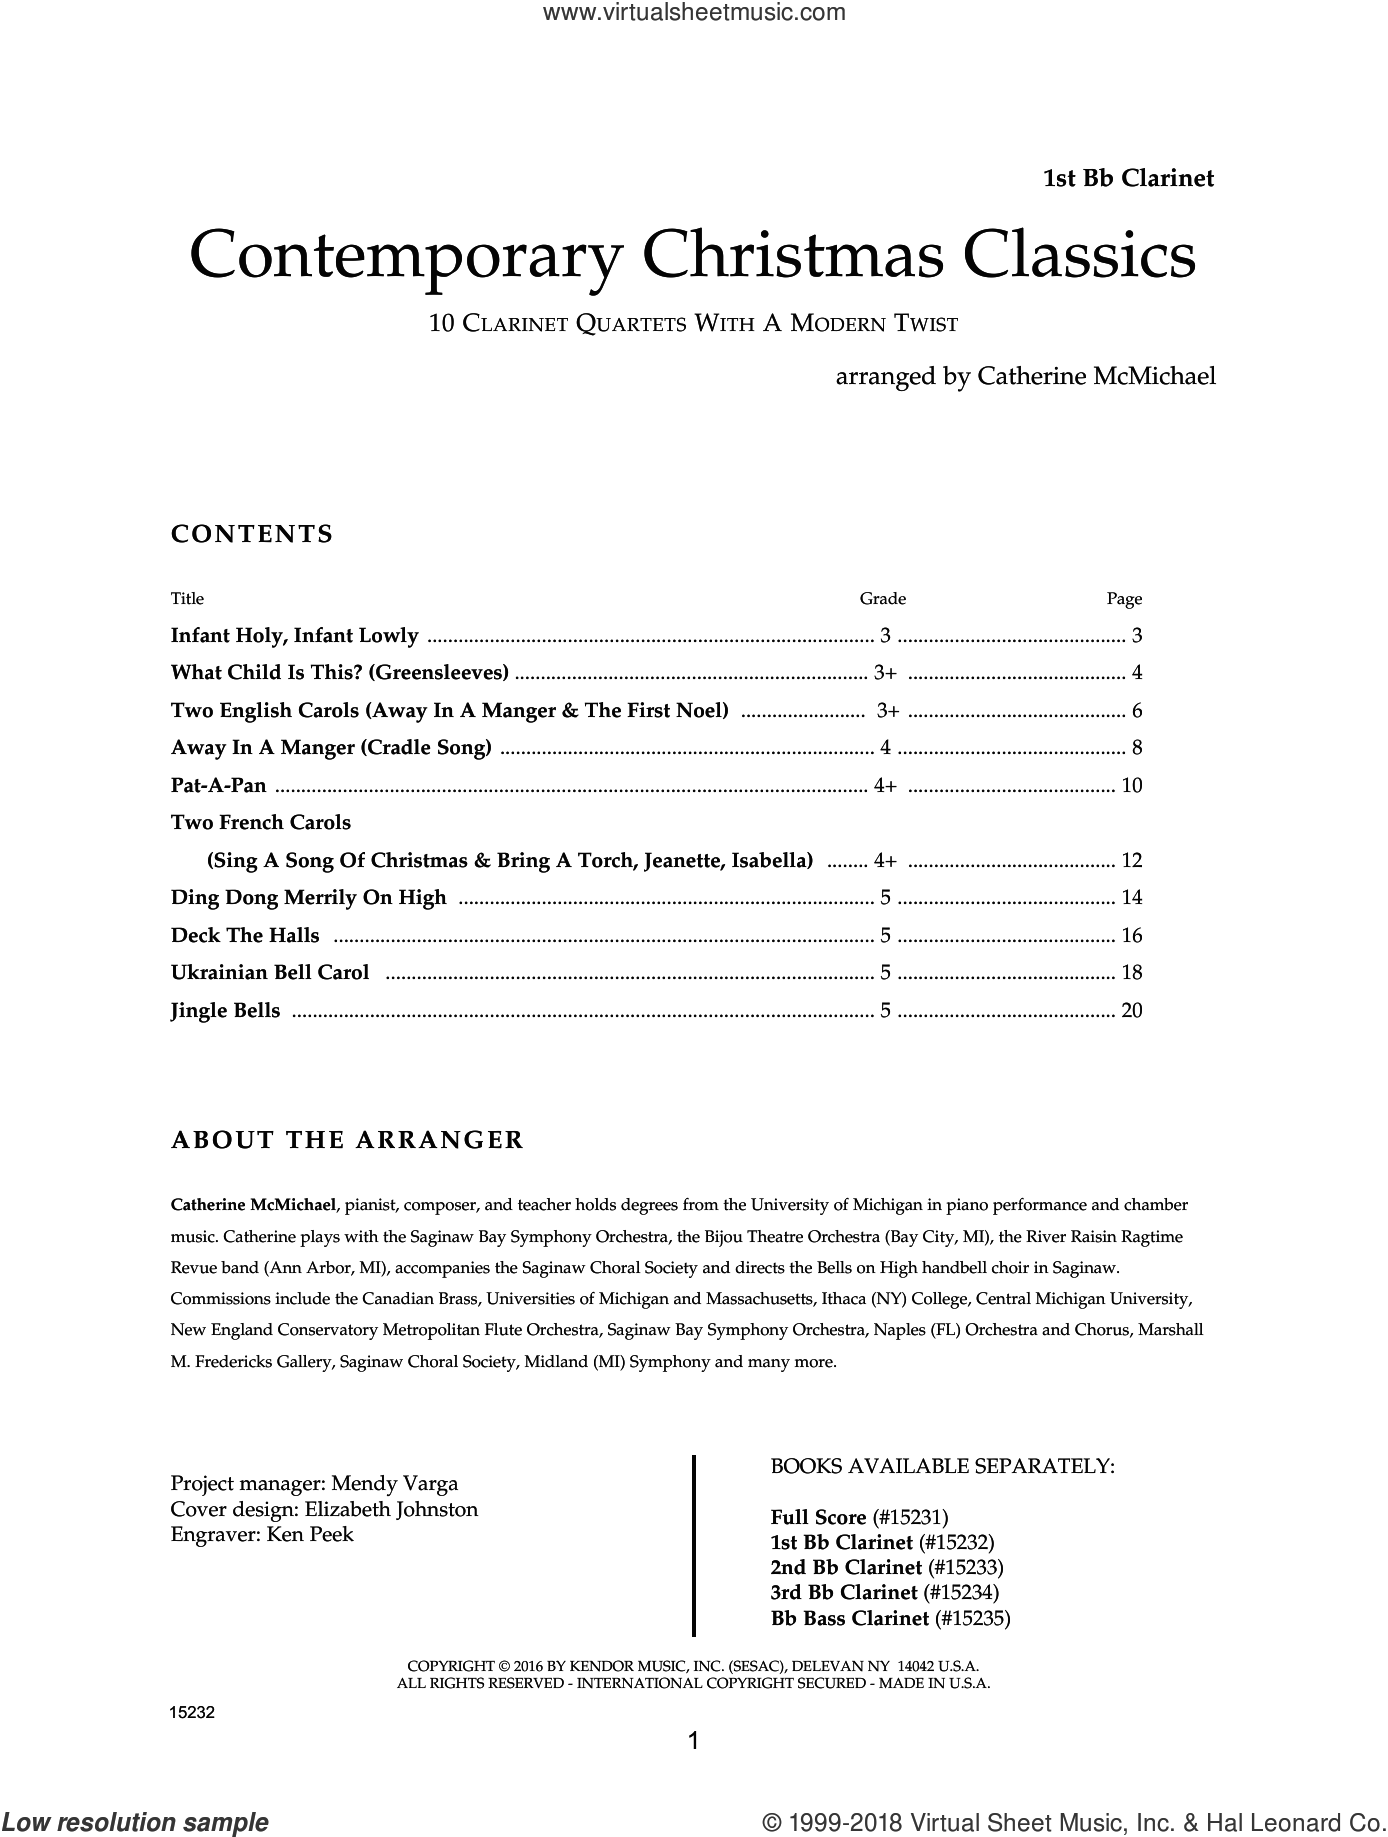 Contemporary Christmas Classics - 1st Bb Clarinet sheet music for clarinet quartet by Catherine McMichael, intermediate. Score Image Preview.